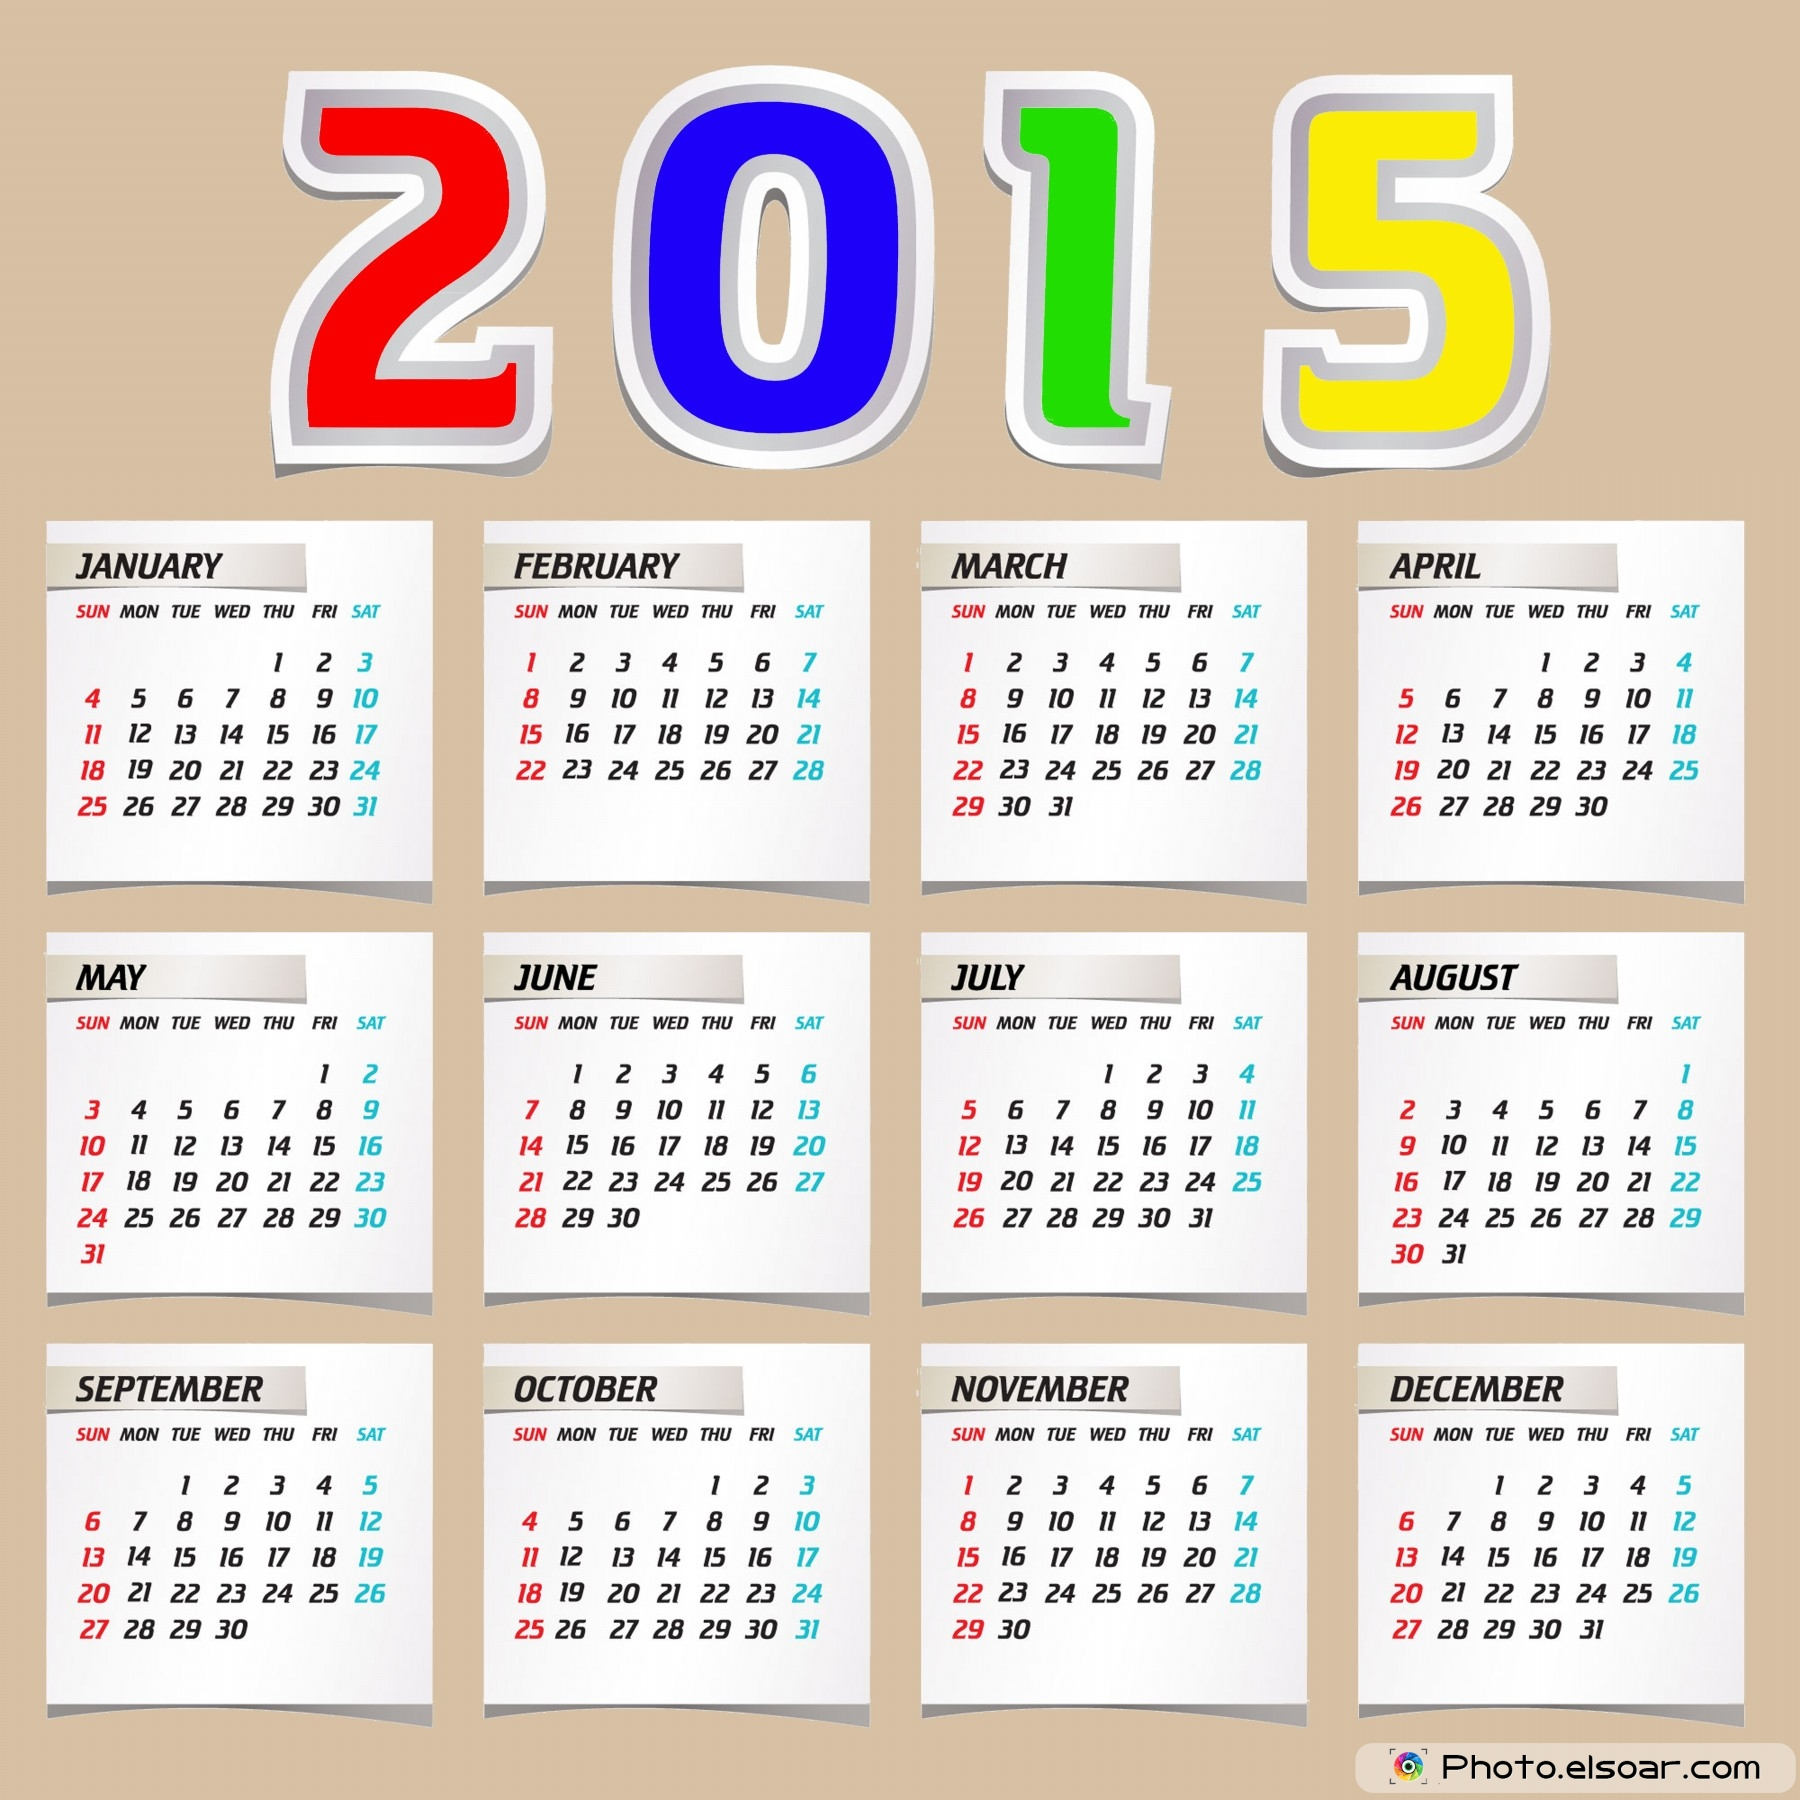 Calendar Design : Top designs for european calendars elsoar